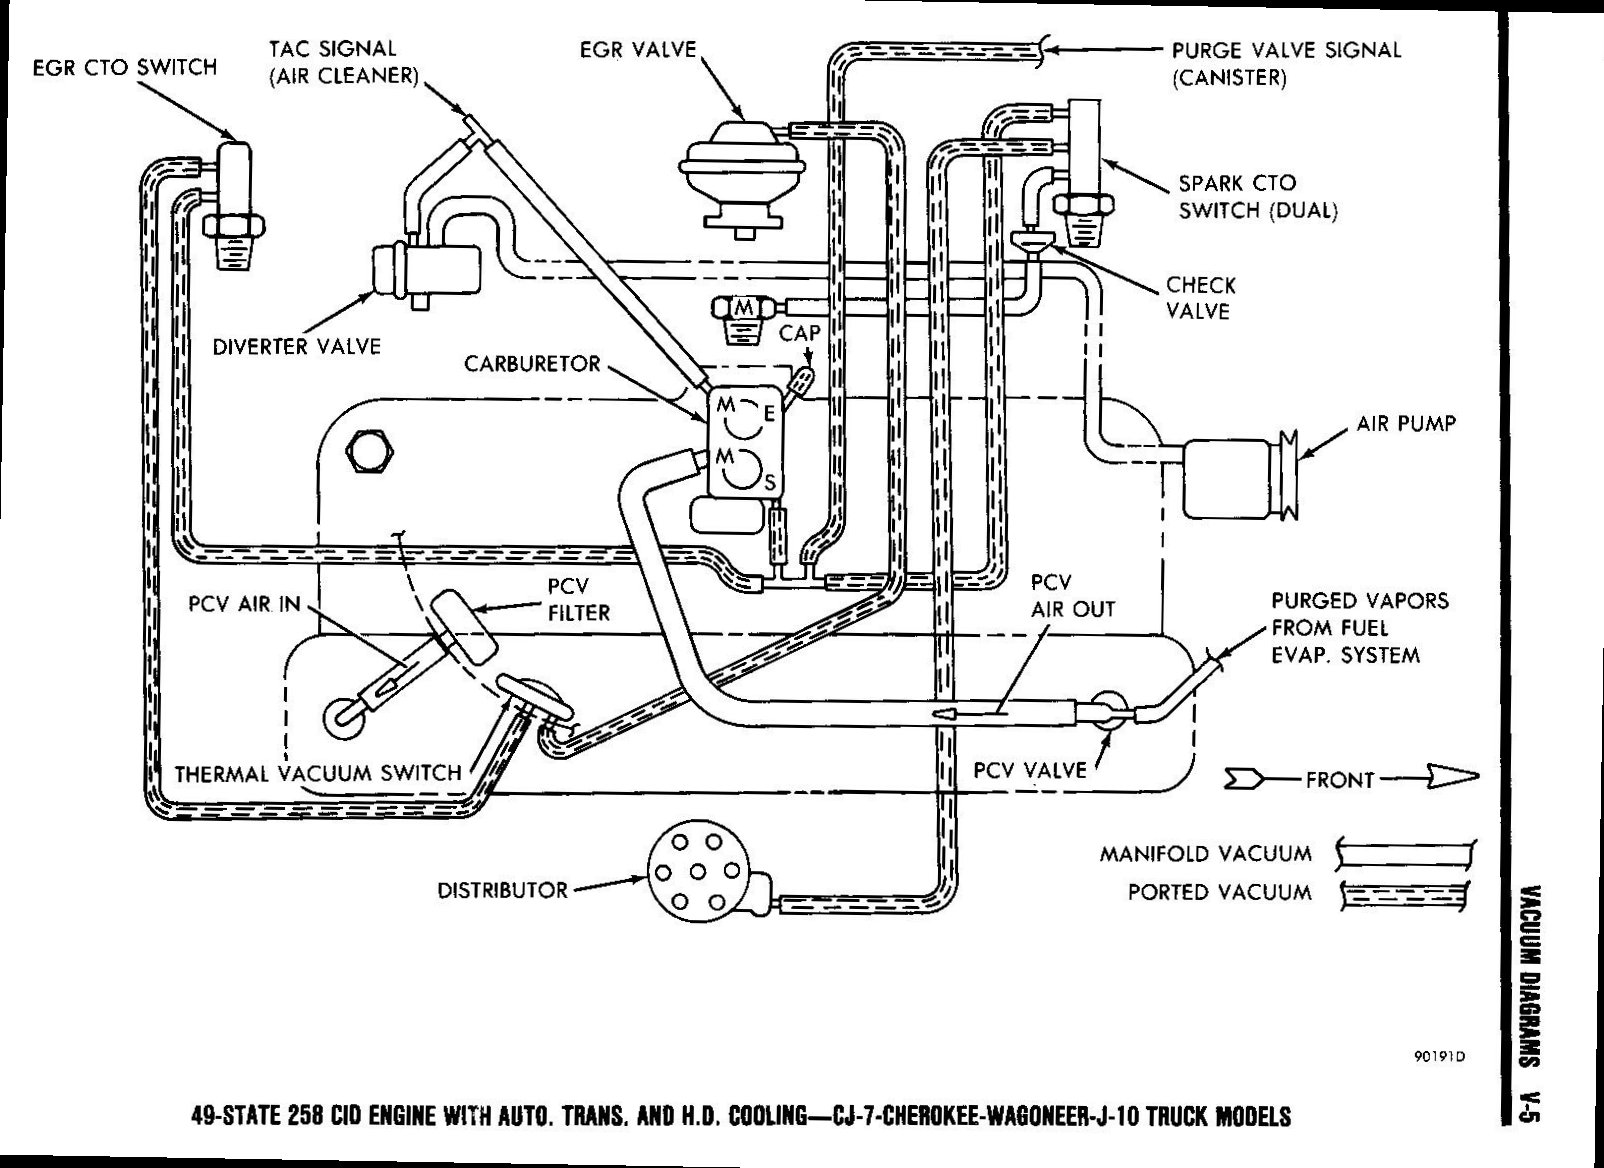 Cj5 258 Vacuum Diagram 544546 furthermore 3gc8m 1993 Lexus Sc300 Already Drained Coolant Nut Bolt together with T25331410 Get heater hose routing diagram 2002 additionally T11601441 Heater hose diagram 1998 ford windstar as well Honda Civic Rear Ke Caliper Diagram. on 2001 dodge heater core replacement